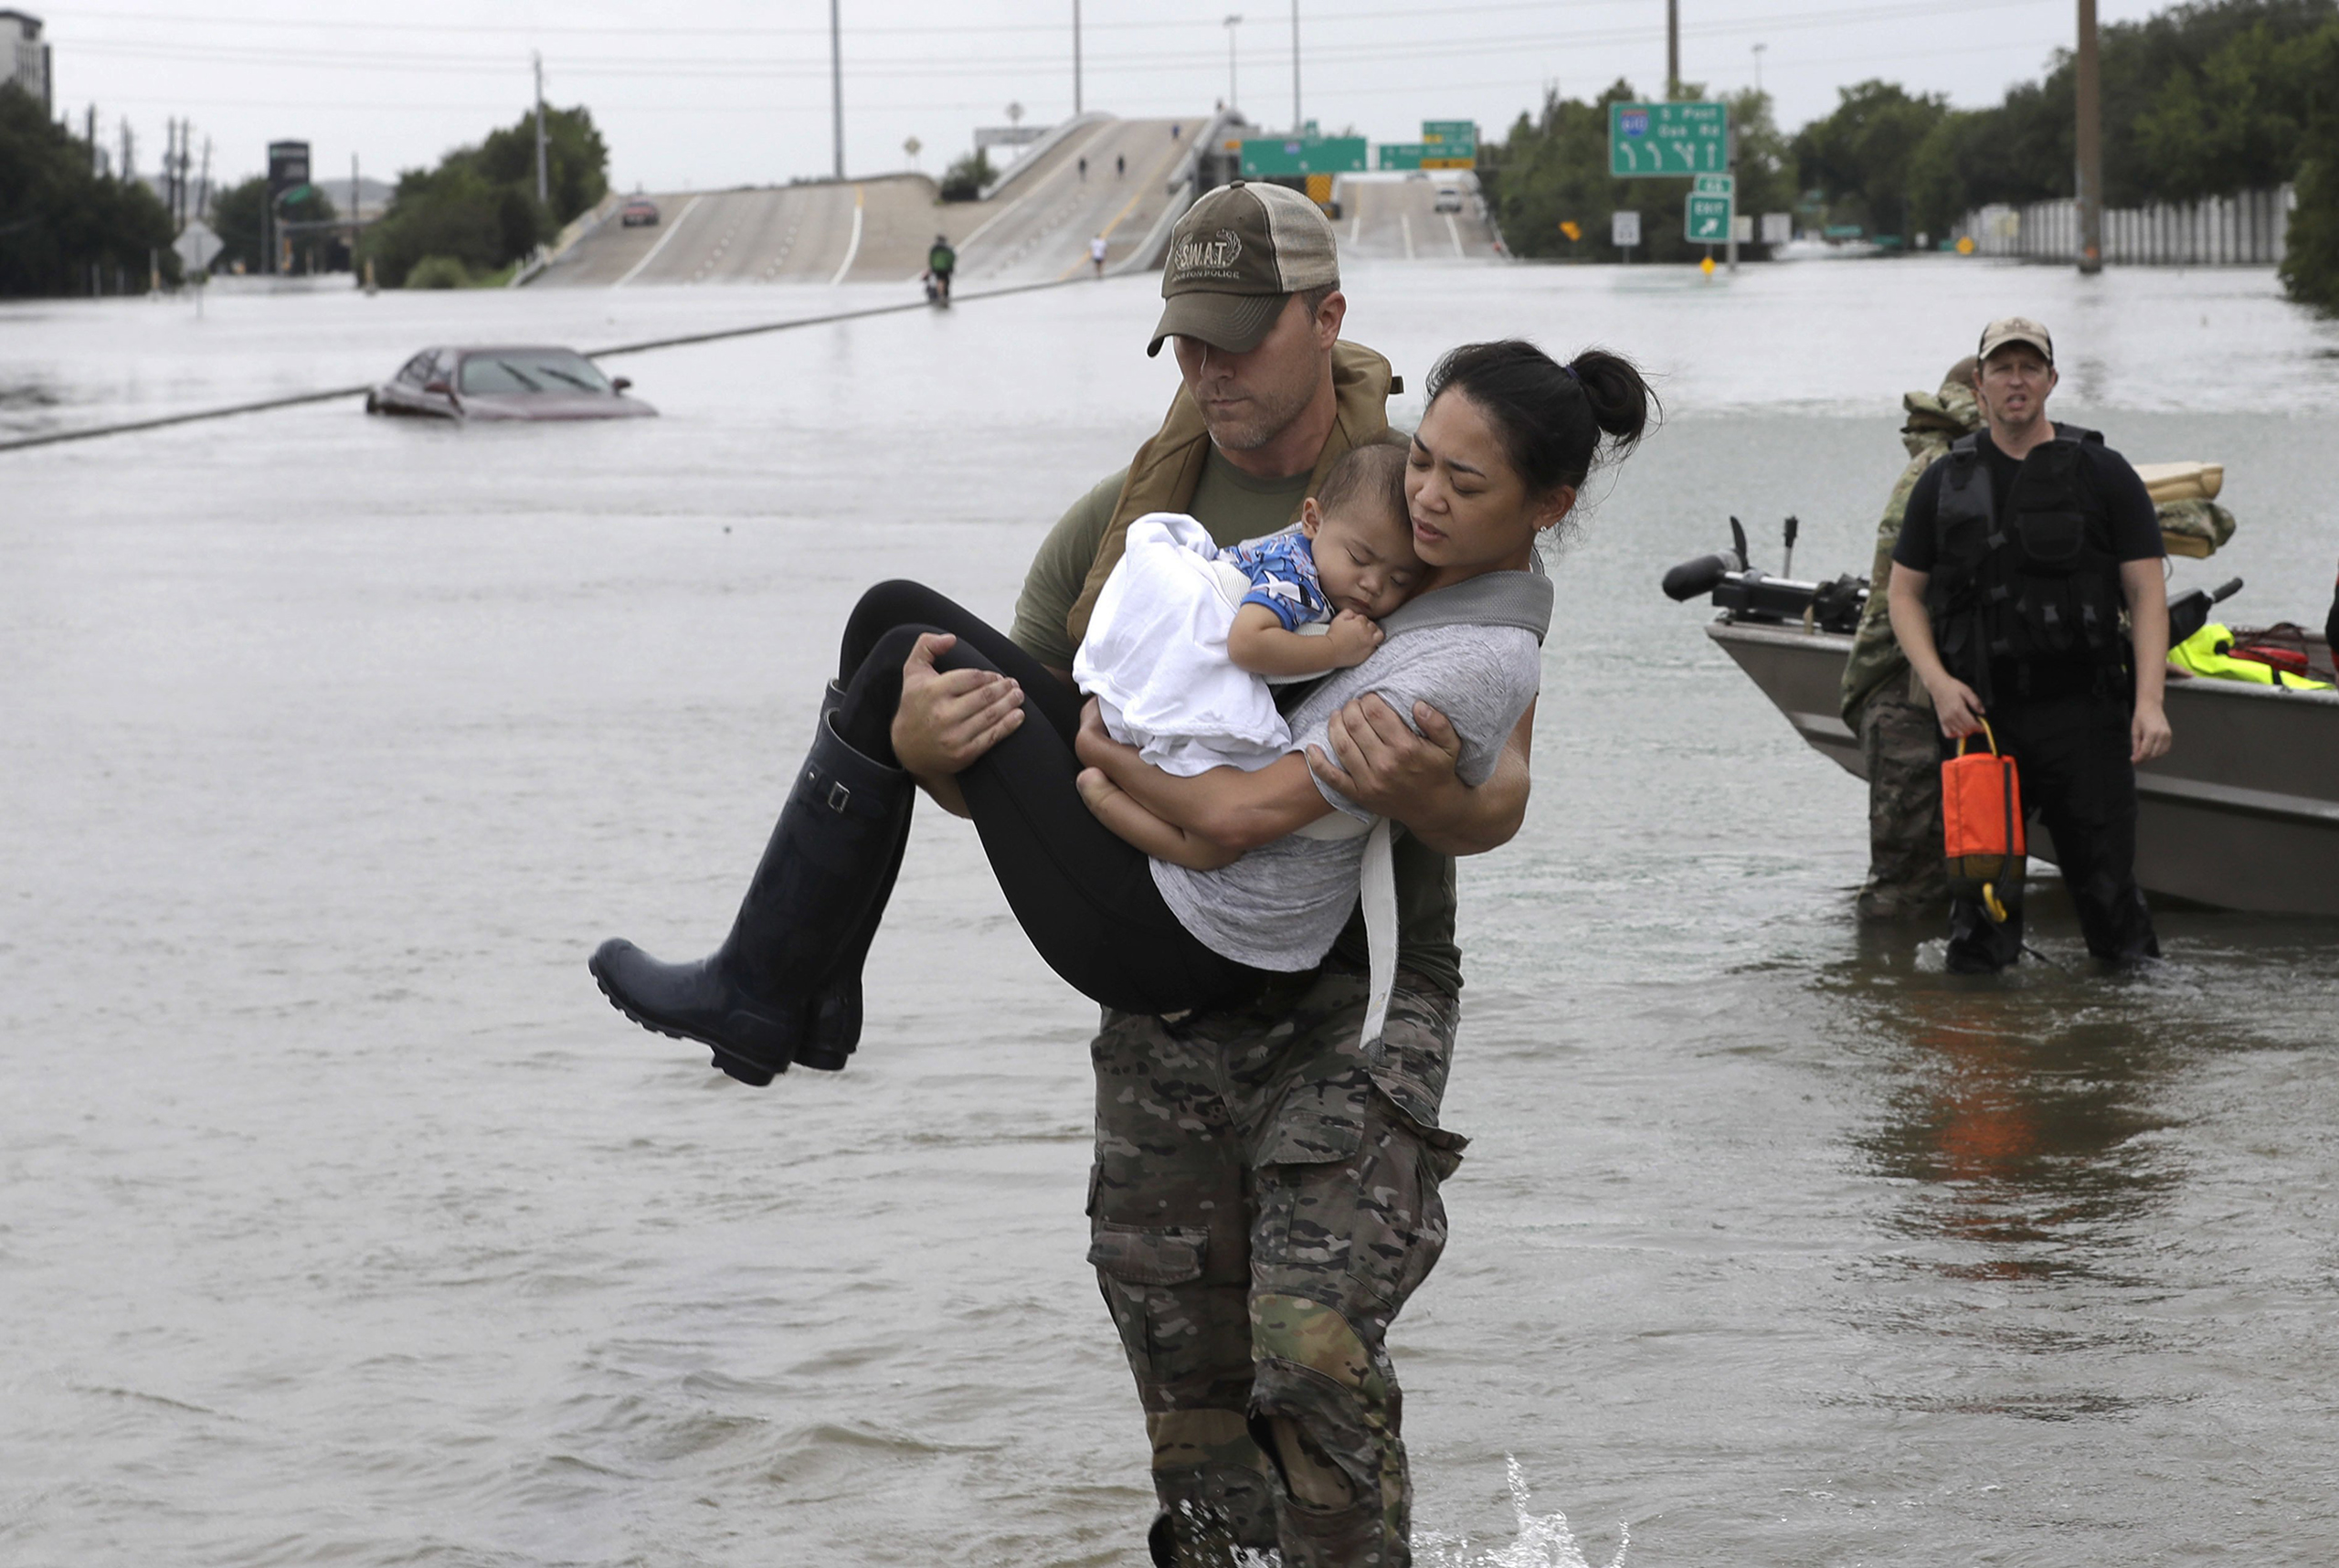 Houston Police SWAT officer Daryl Hudeck carries Catherine Pham and her 13-month-old son Aiden after rescuing them from their home surrounded by floodwaters from Tropical Storm Harvey in Houston, on Aug. 27, 2017.